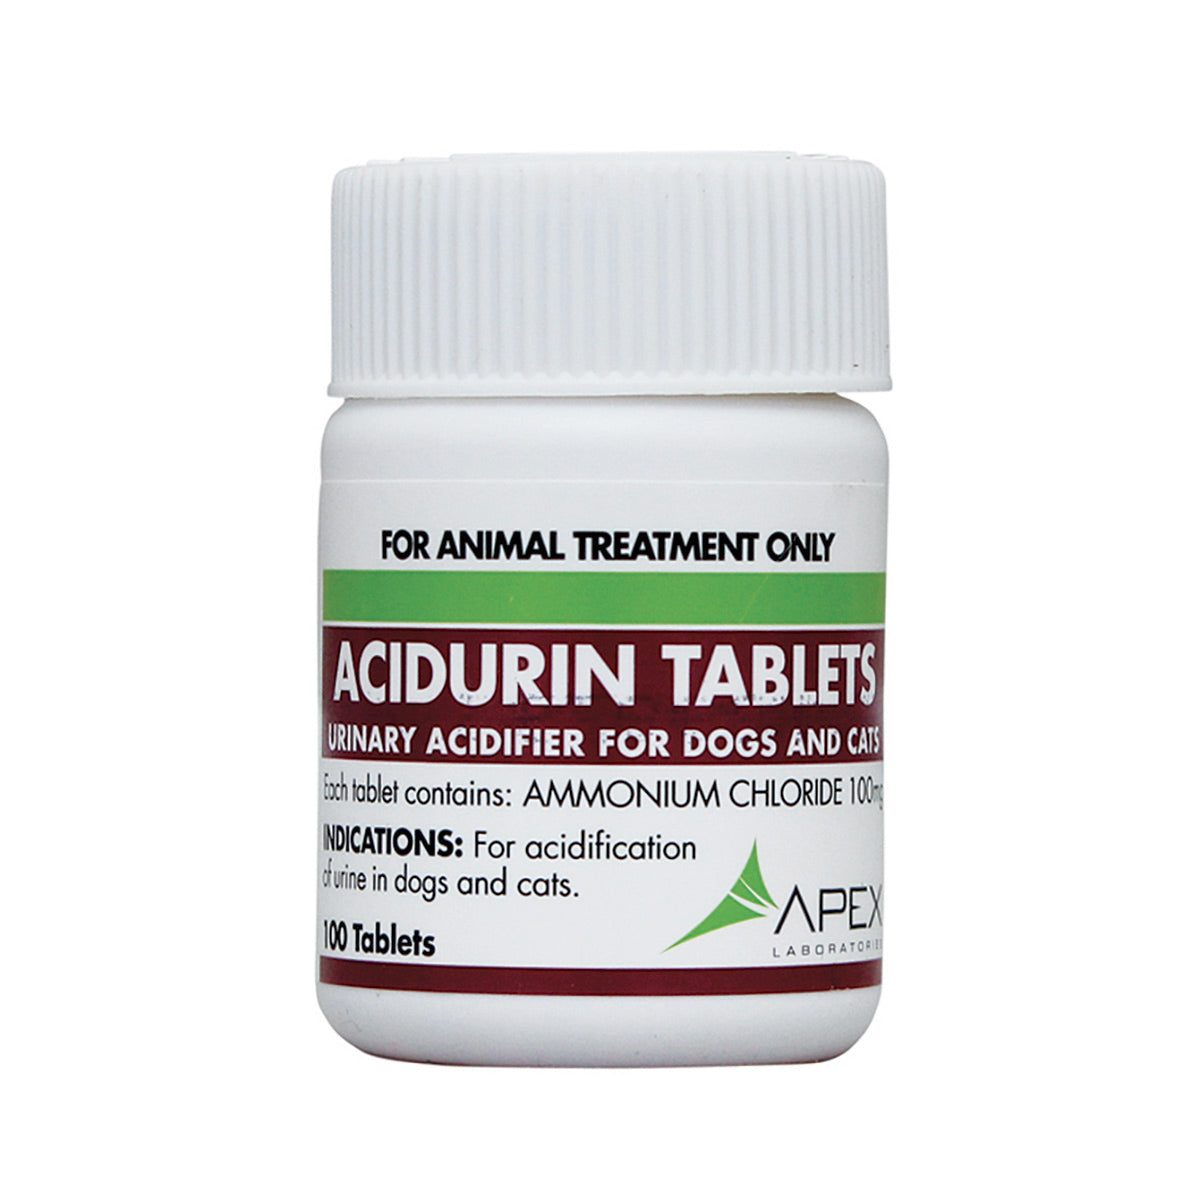 Acidurin Tablets